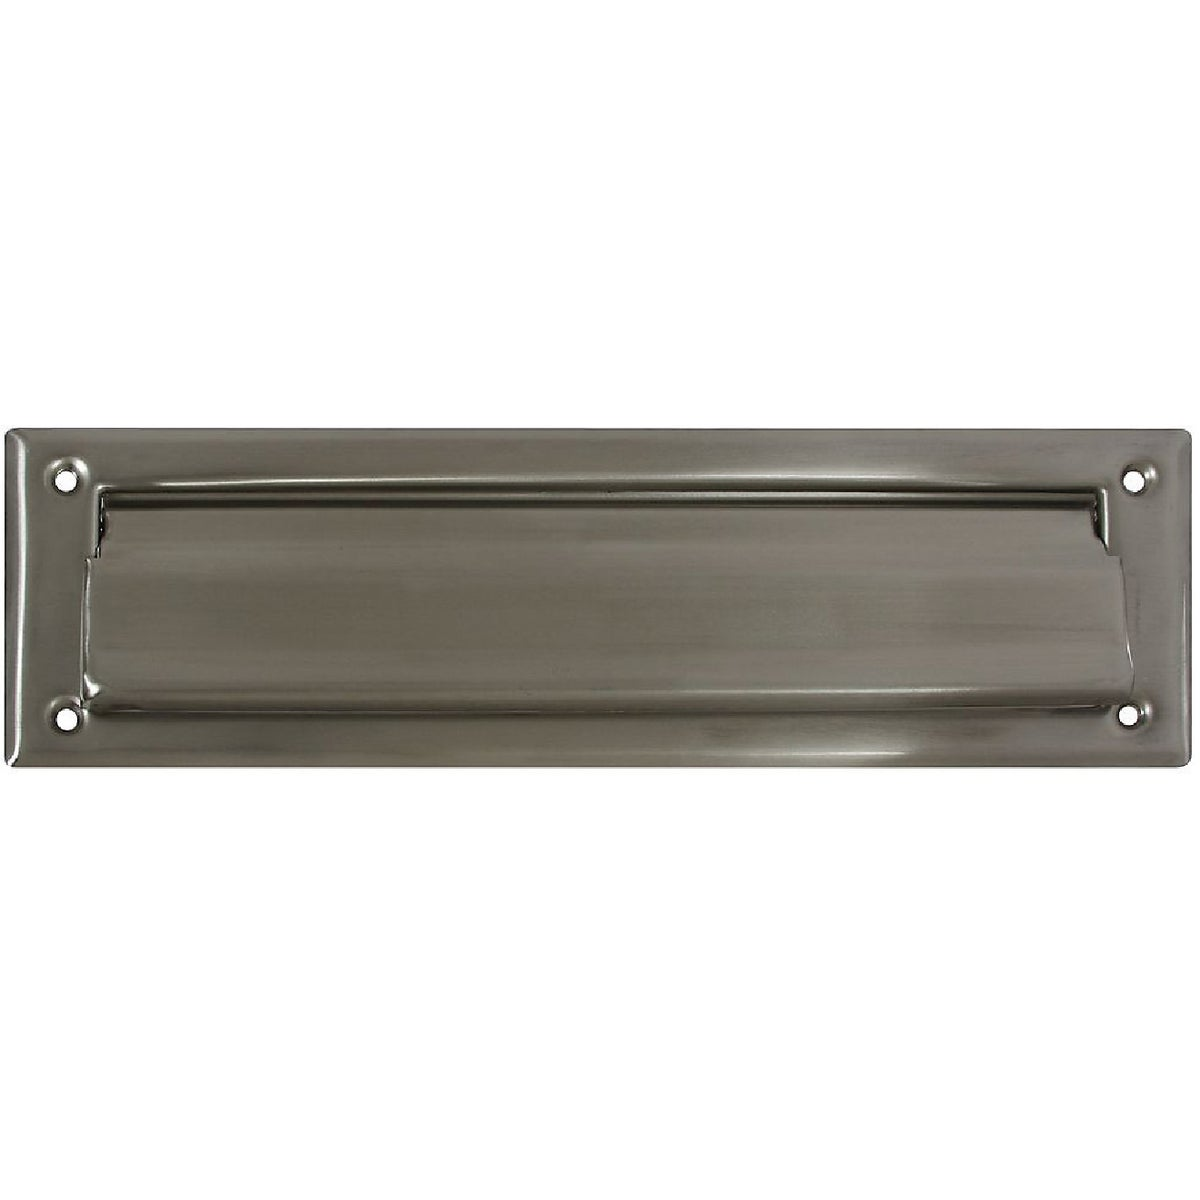 SN 2X11 MAIL SLOT - N325290 by National Mfg Co